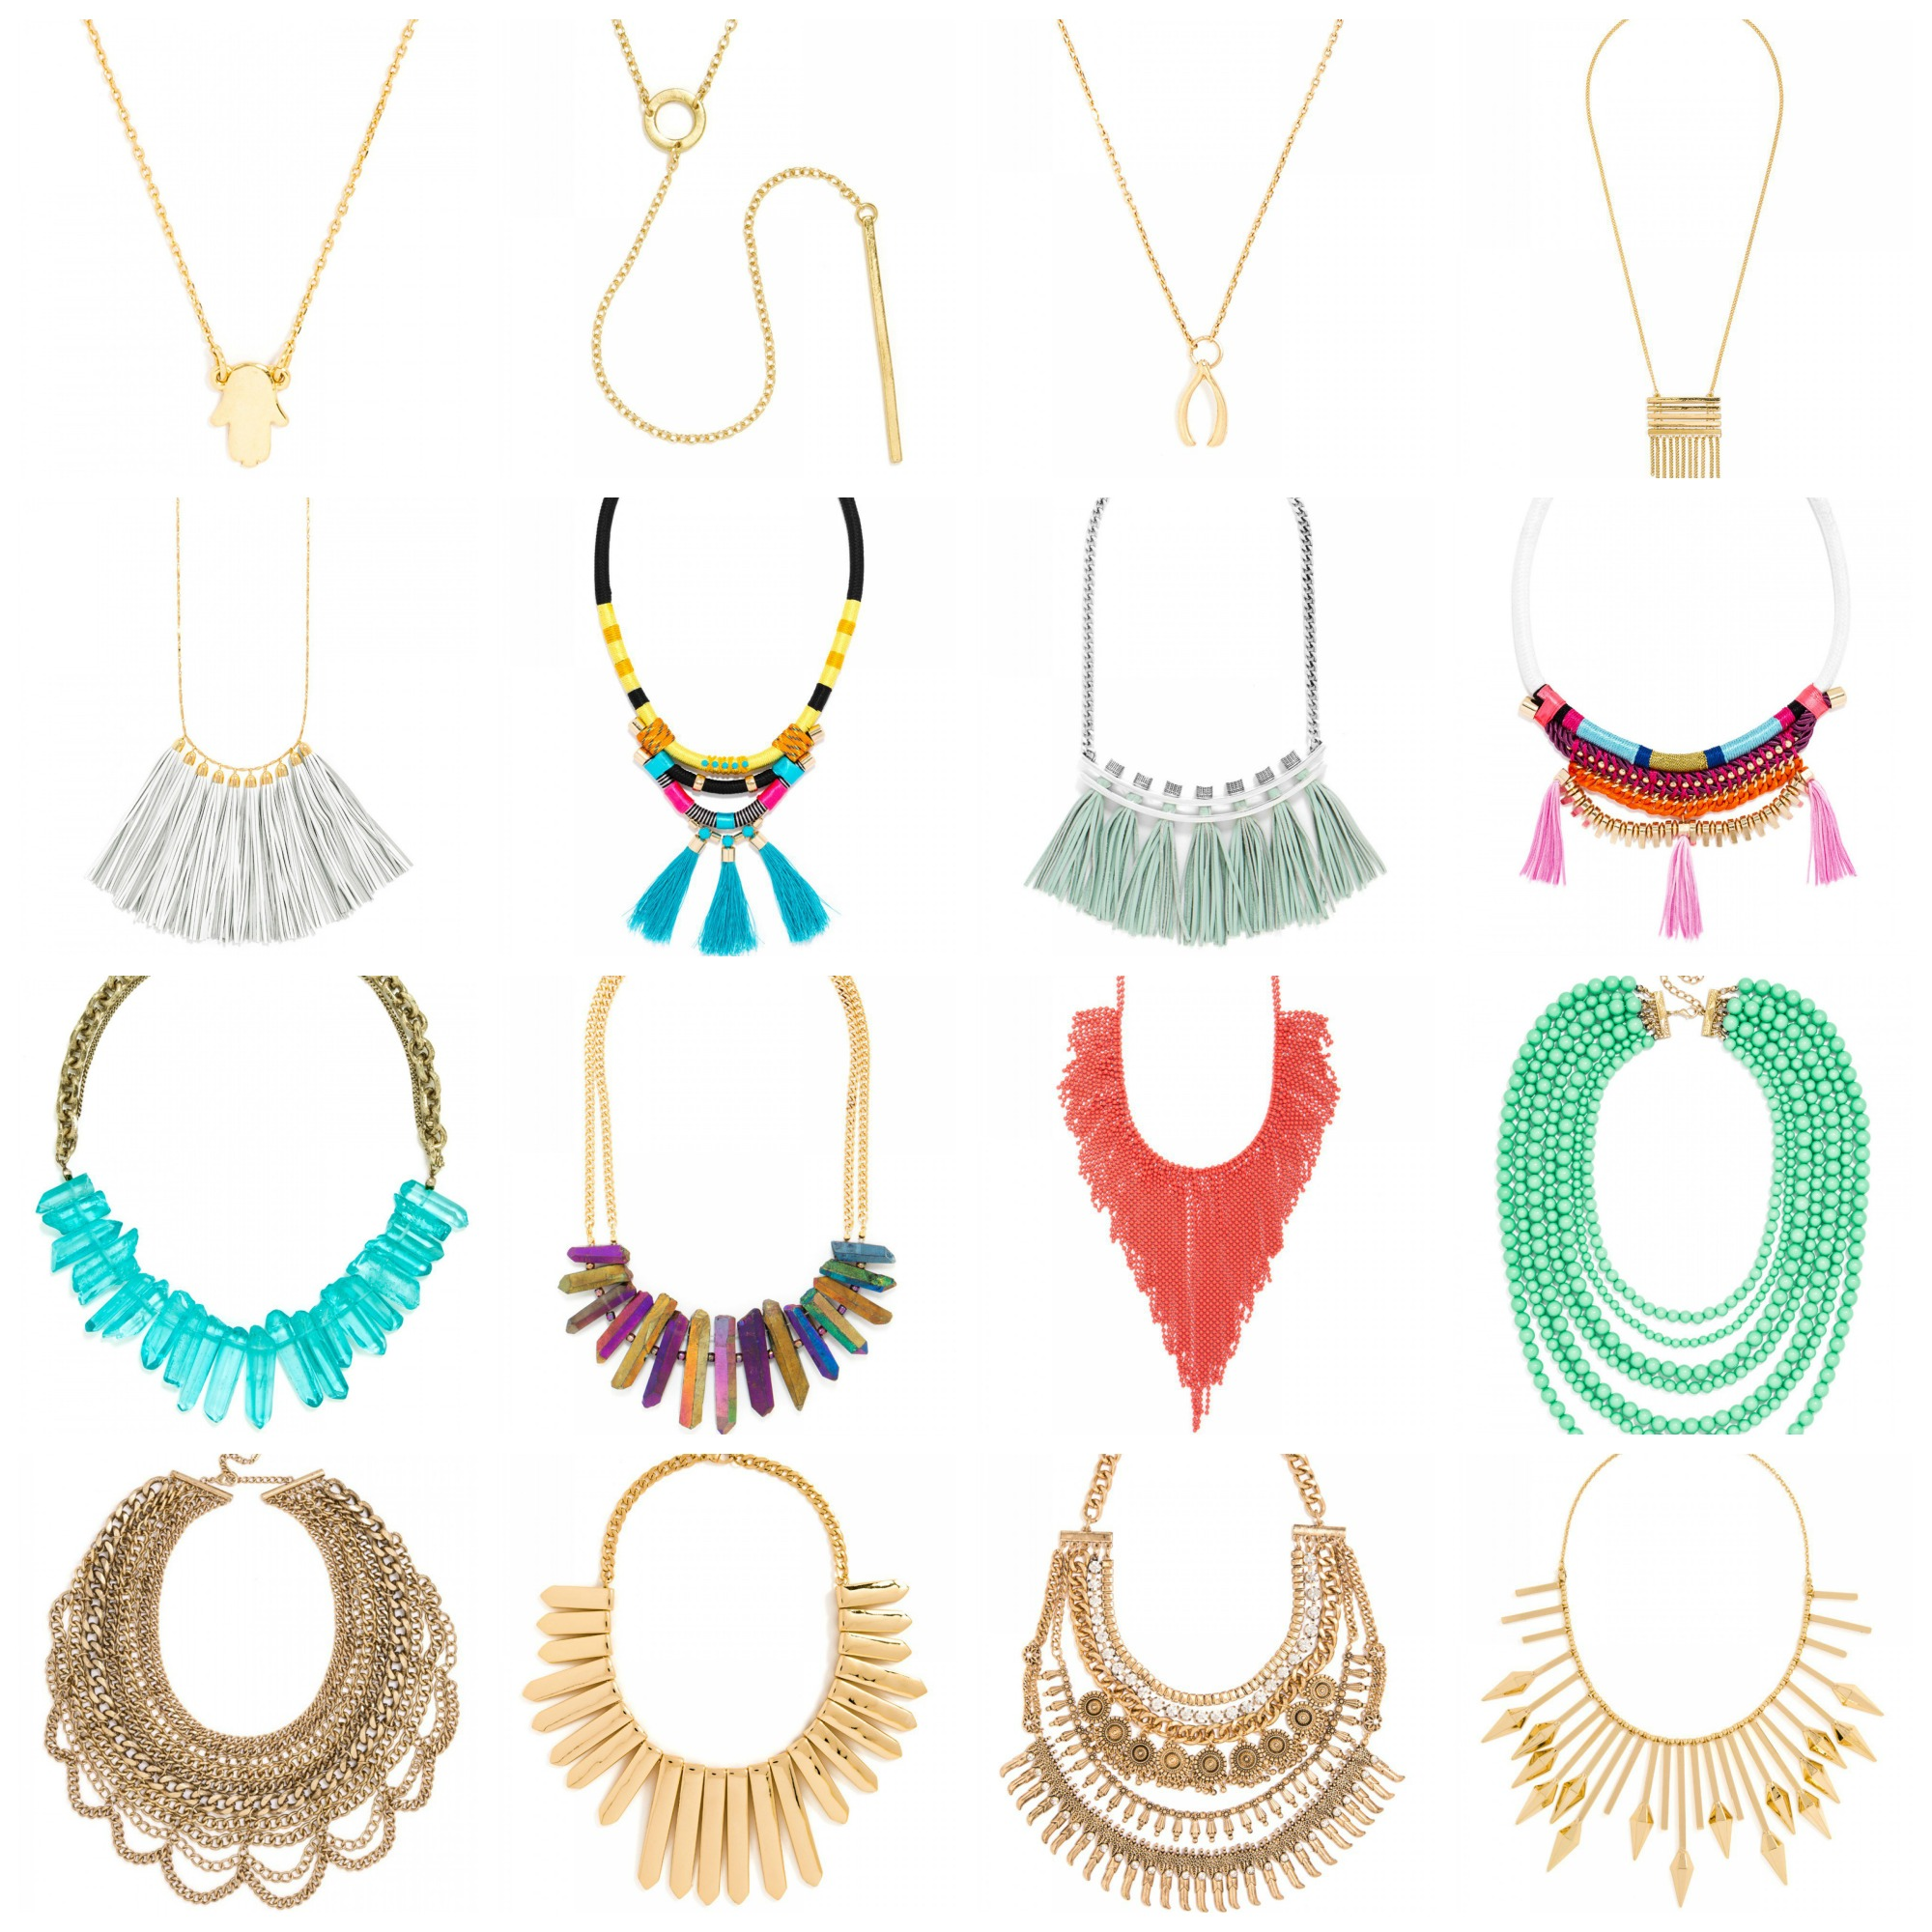 Bauble Bar Necklace Sale - For The Love Of Glitter